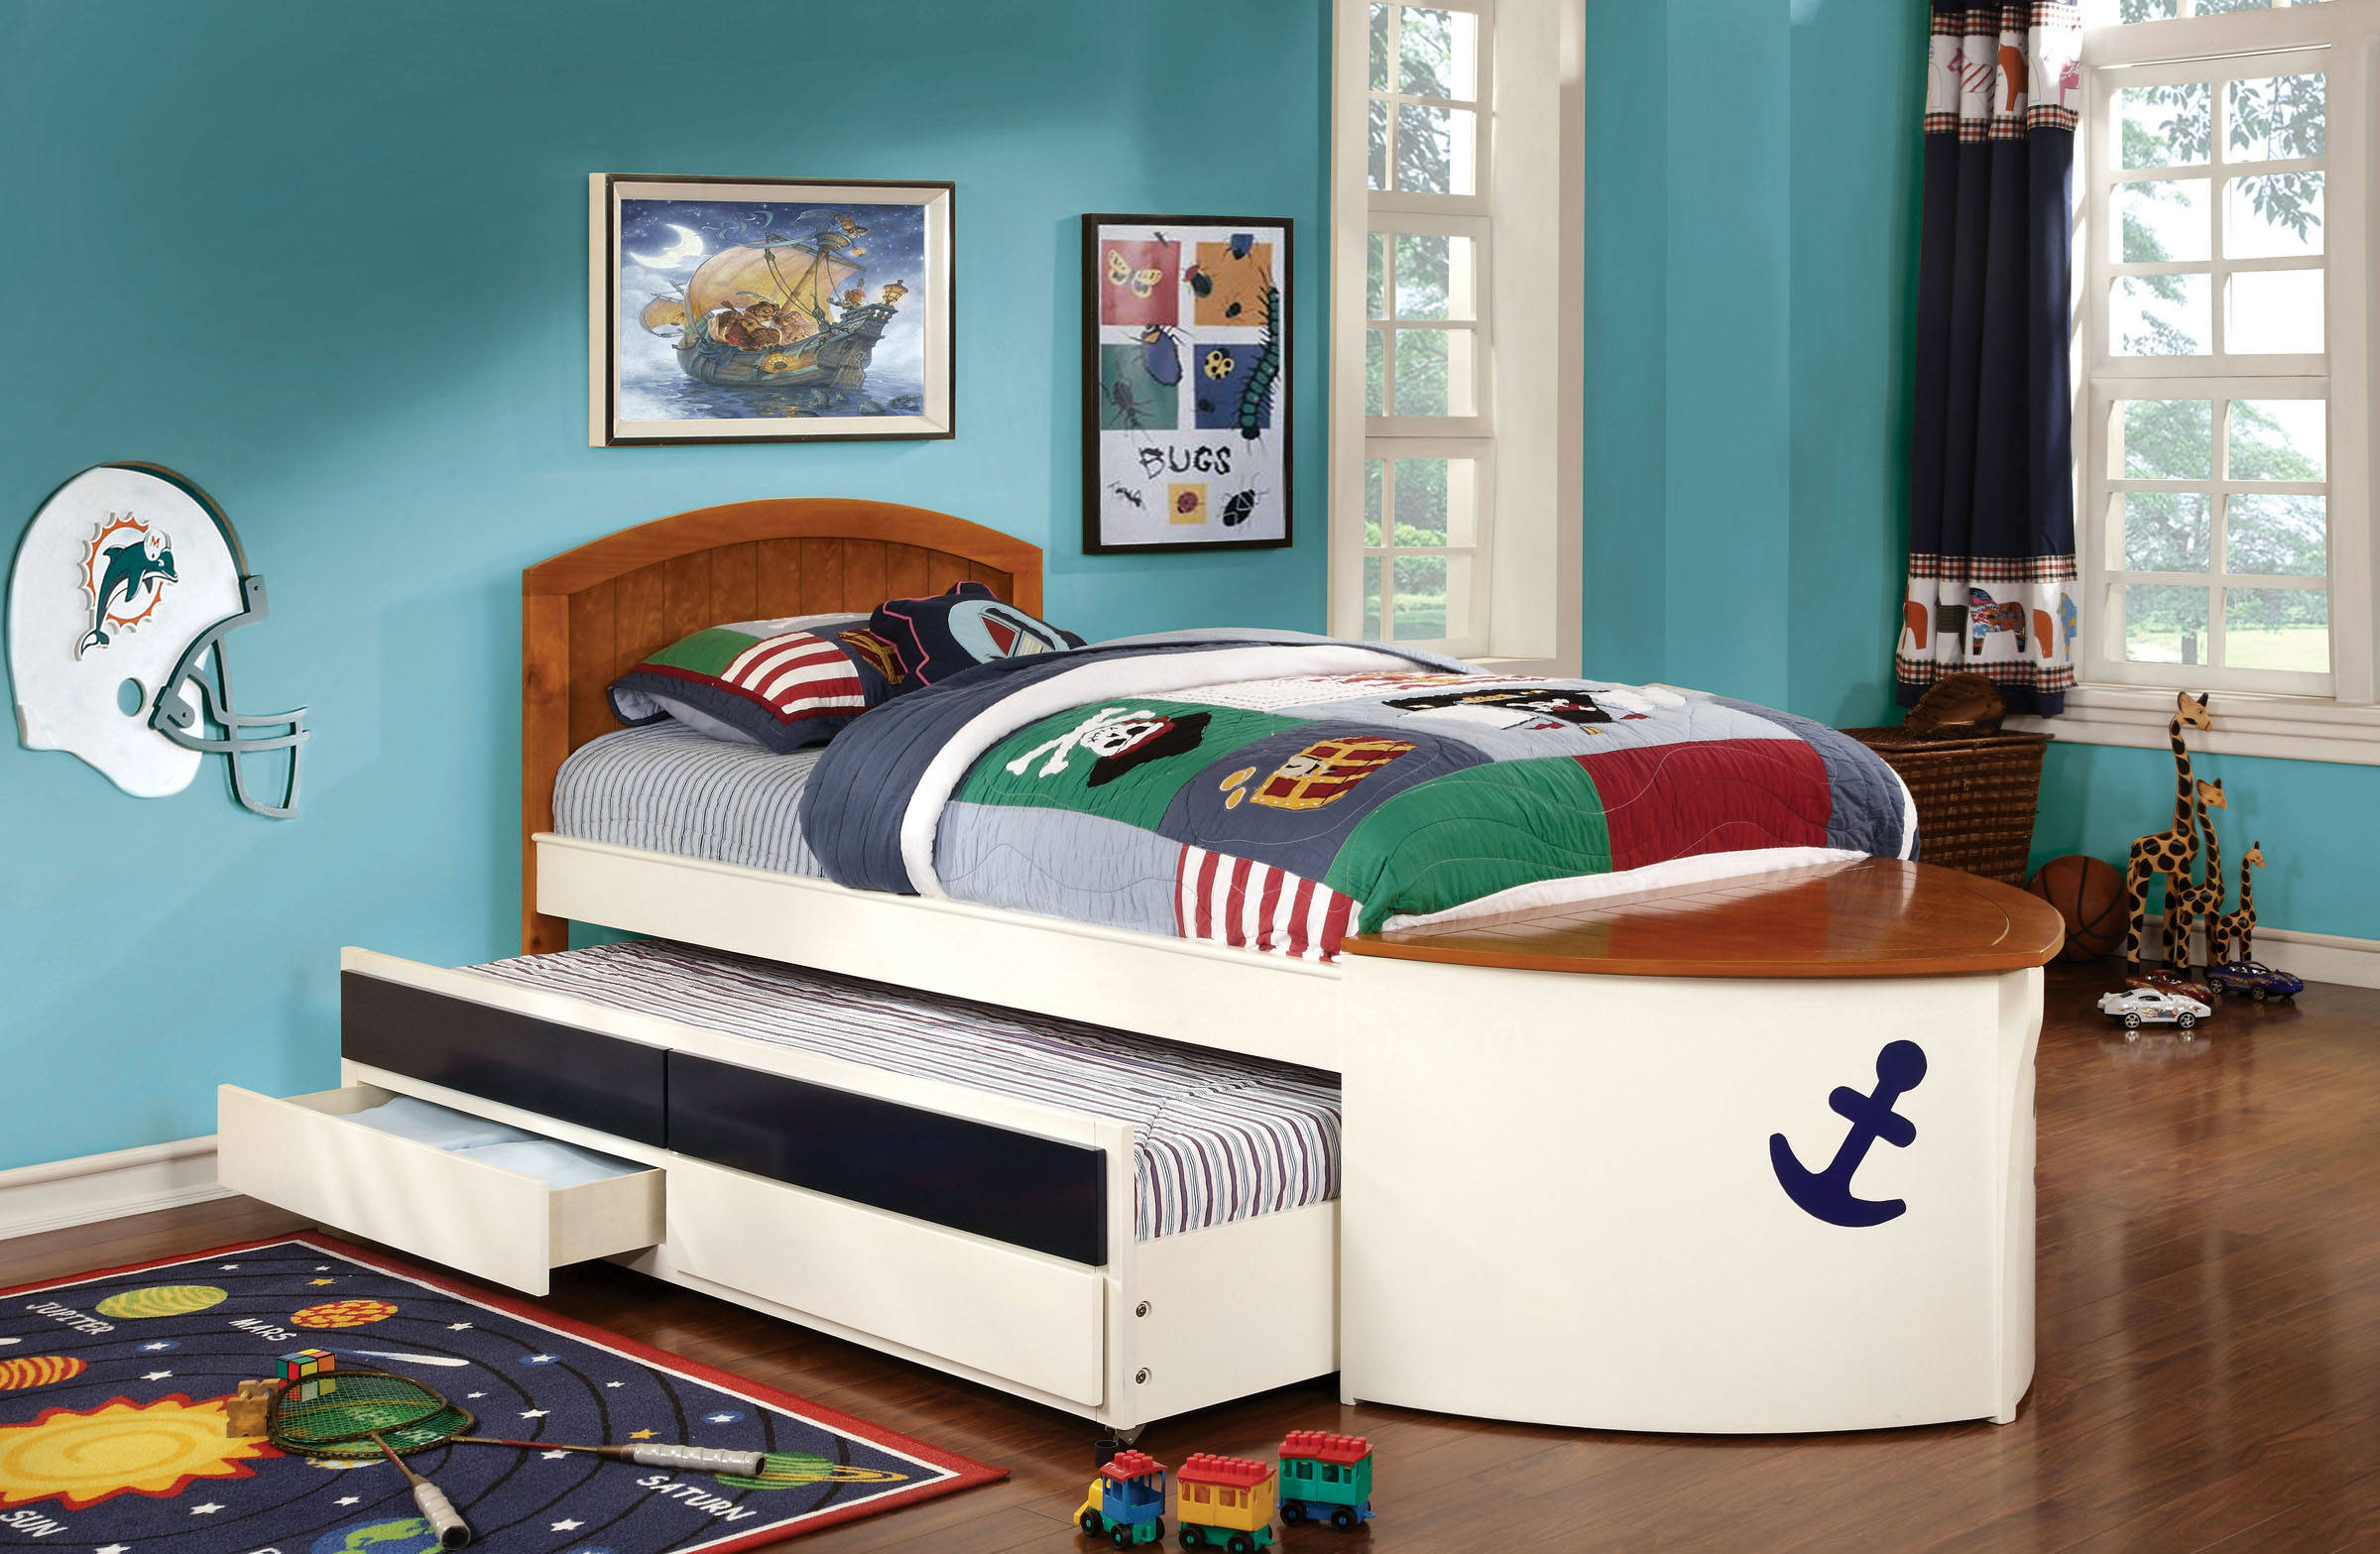 Furniture of america voyager twin trundle and drawers bed for Furniture of america bed reviews